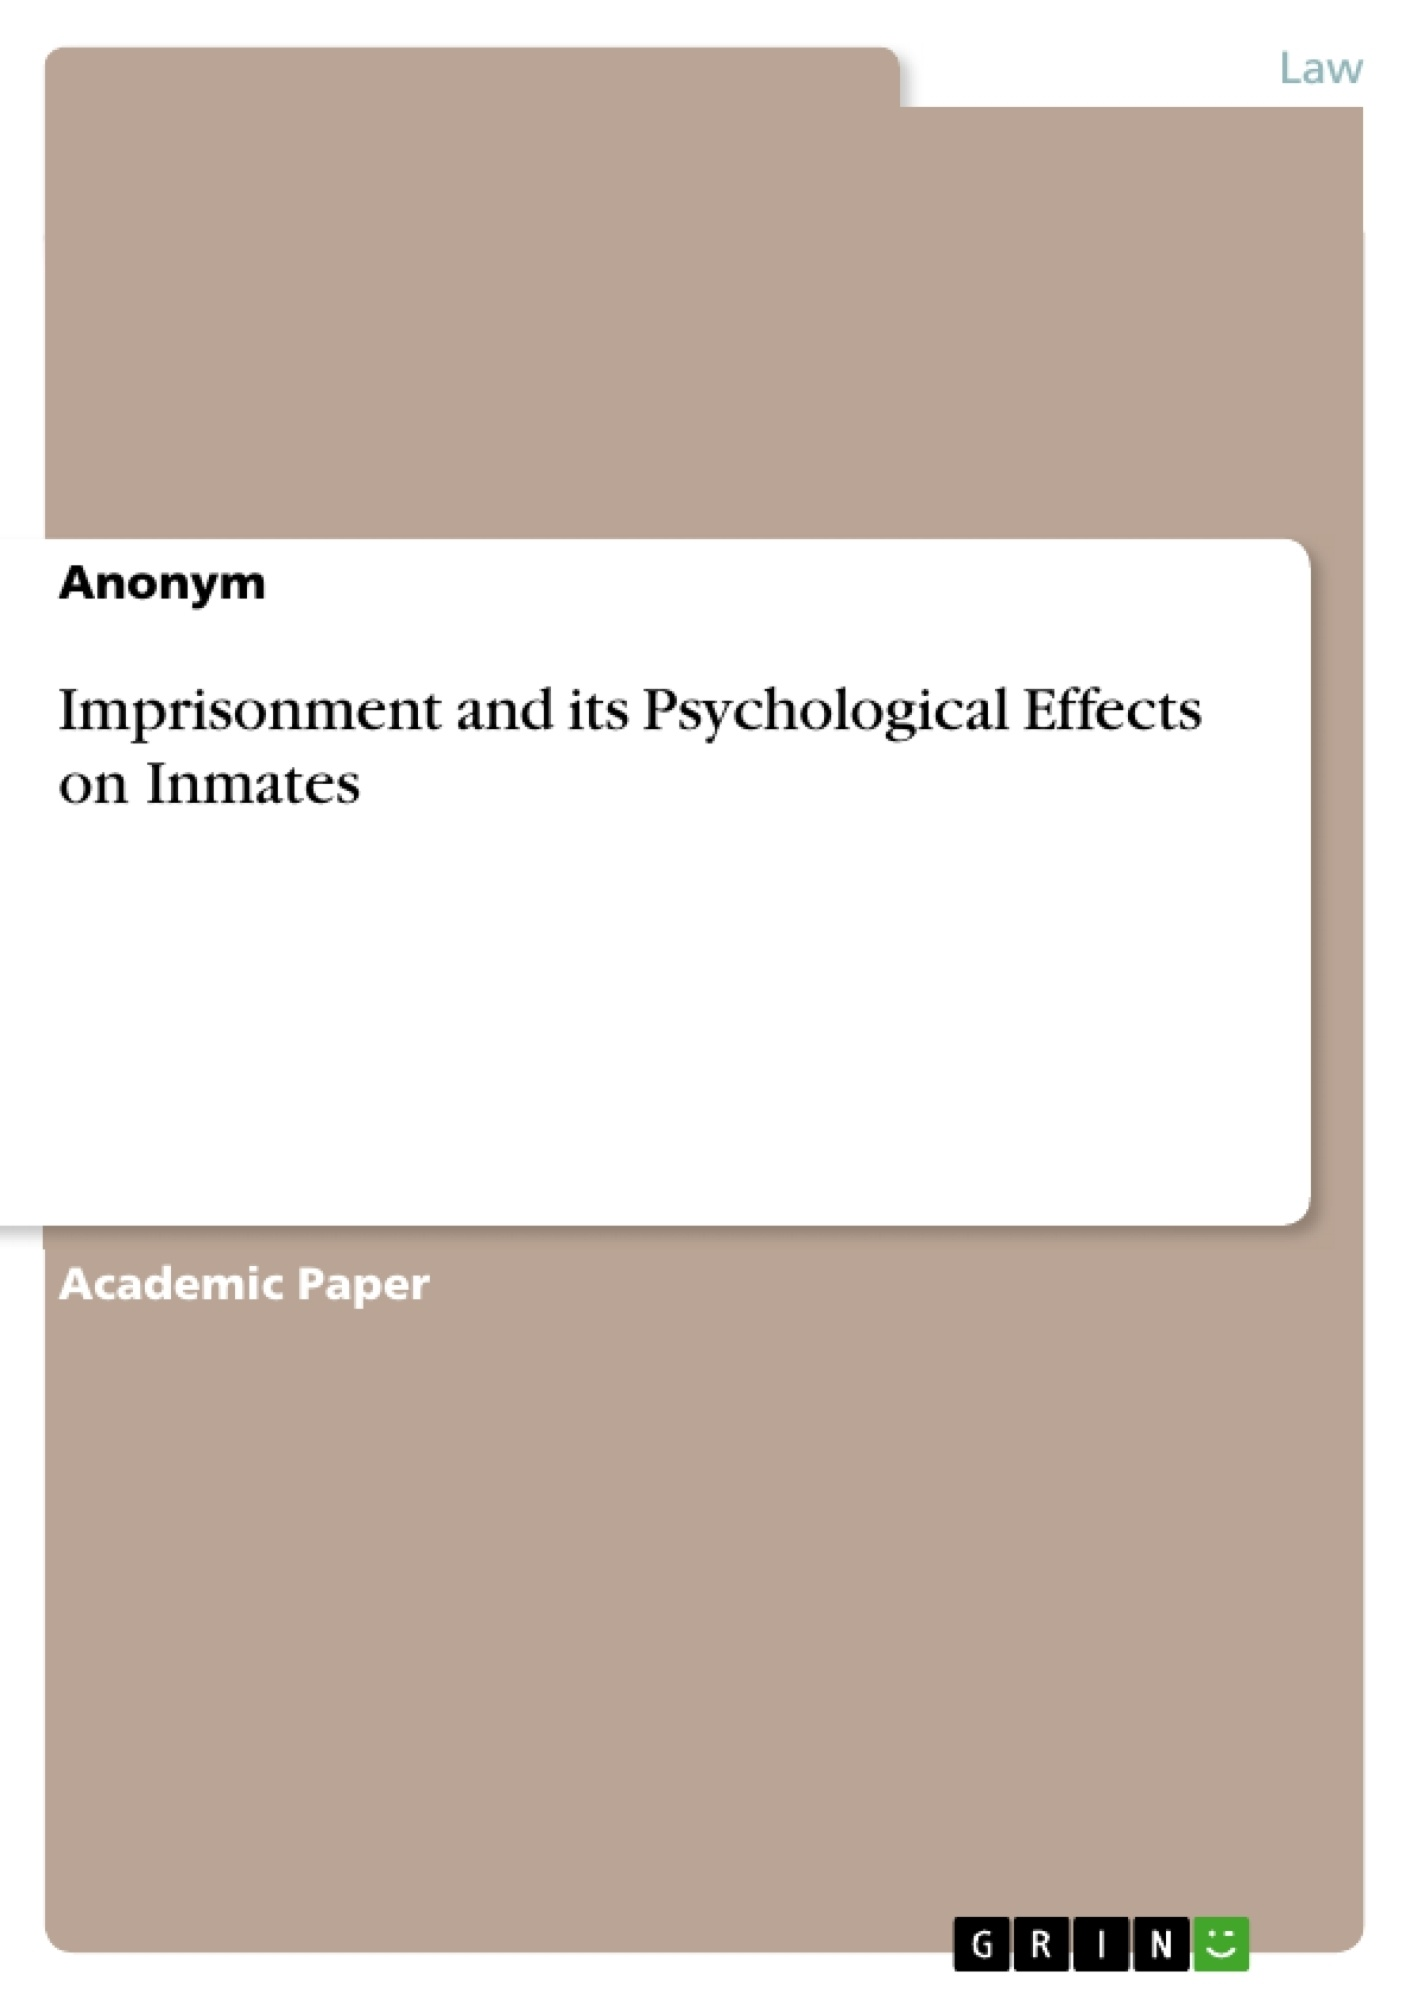 Title: Imprisonment and its Psychological Effects on Inmates